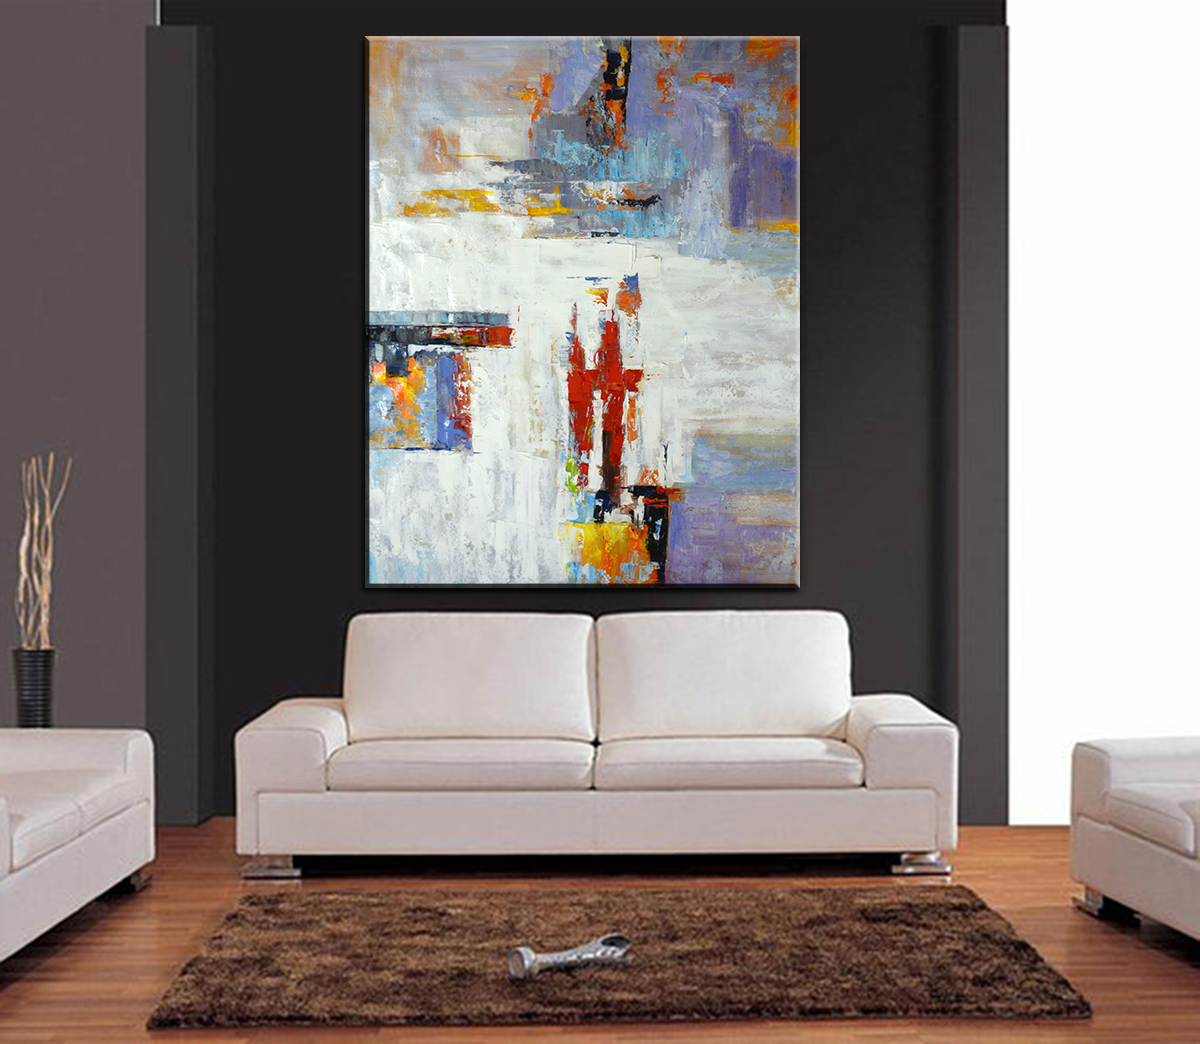 Hand-painting Abstract Oil Painting Extra Large Single Room